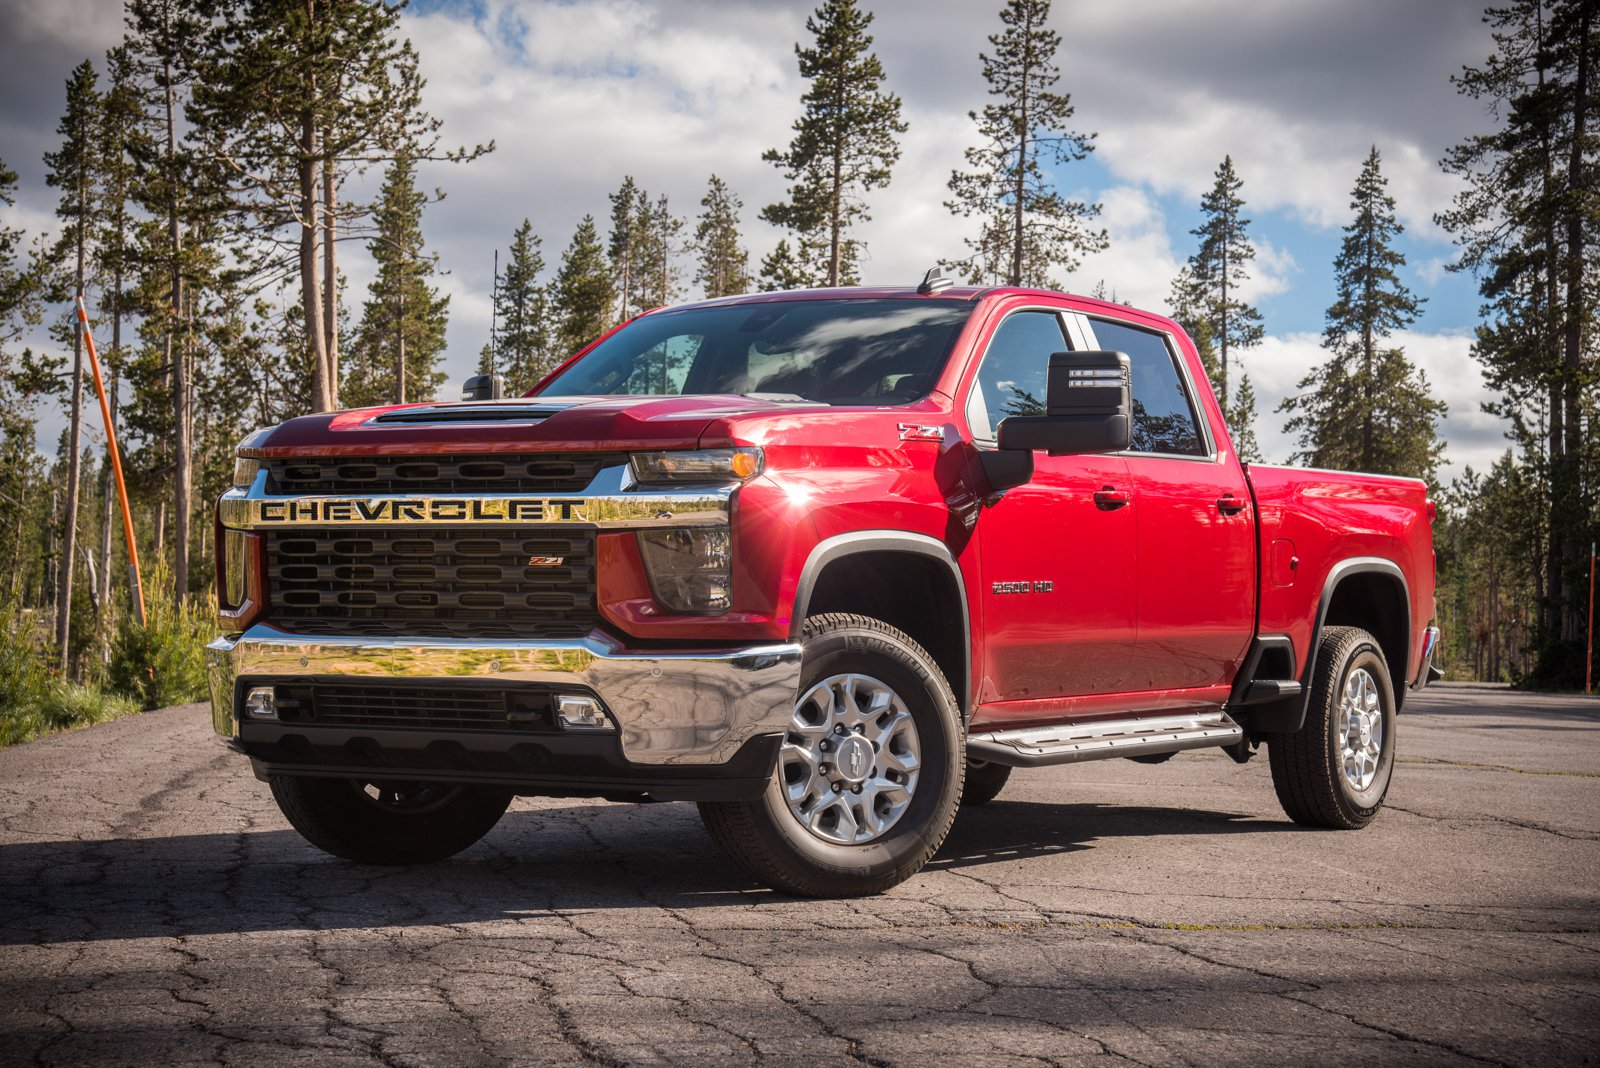 2020 Chevrolet Silverado HD Review - GM Inside News